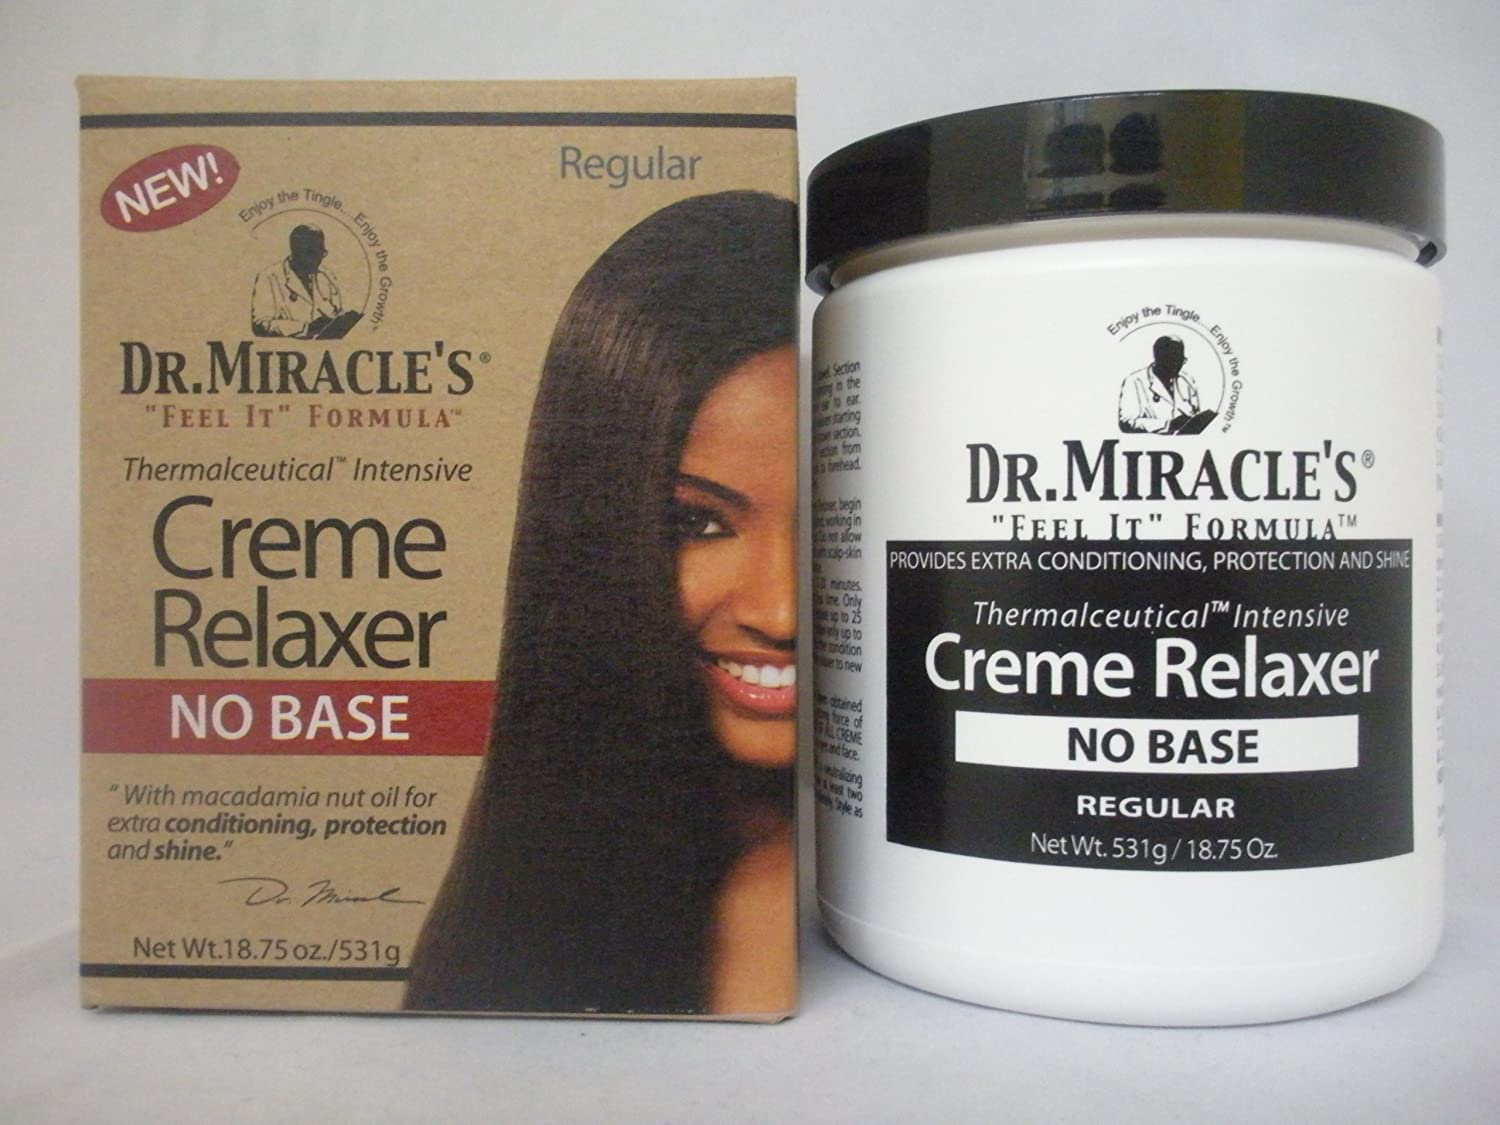 Dr. Miracle's Creme Relaxer